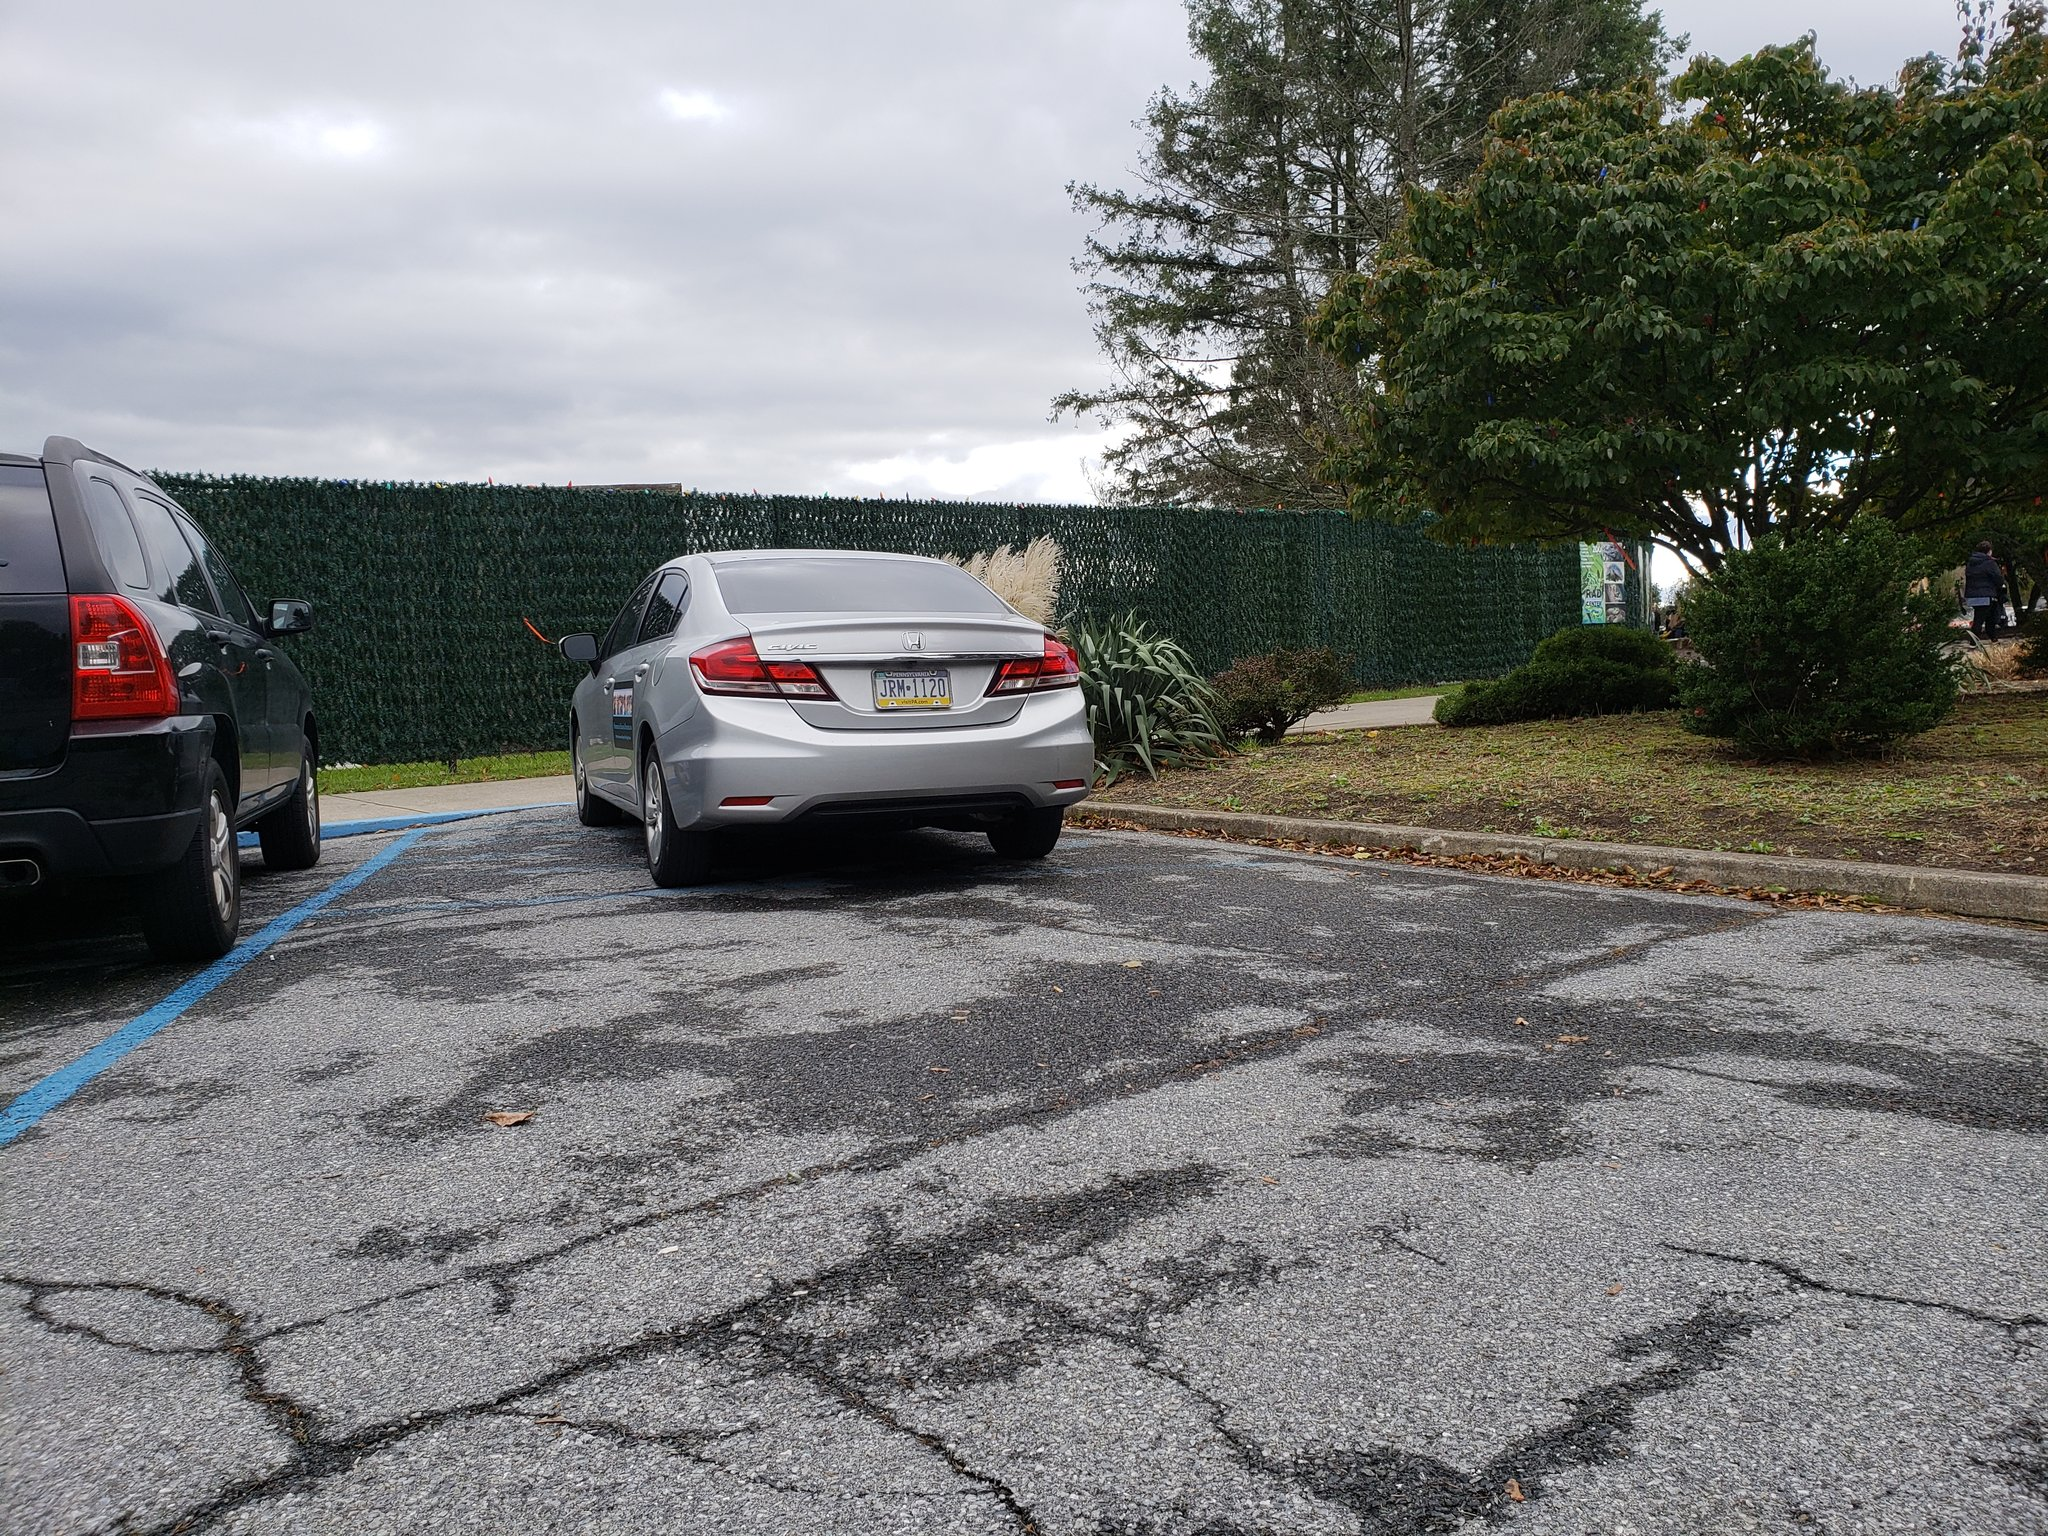 This pisses me off! #hashmarks #are #not #a #parking #space . https://t.co/NEMKaAT1HK